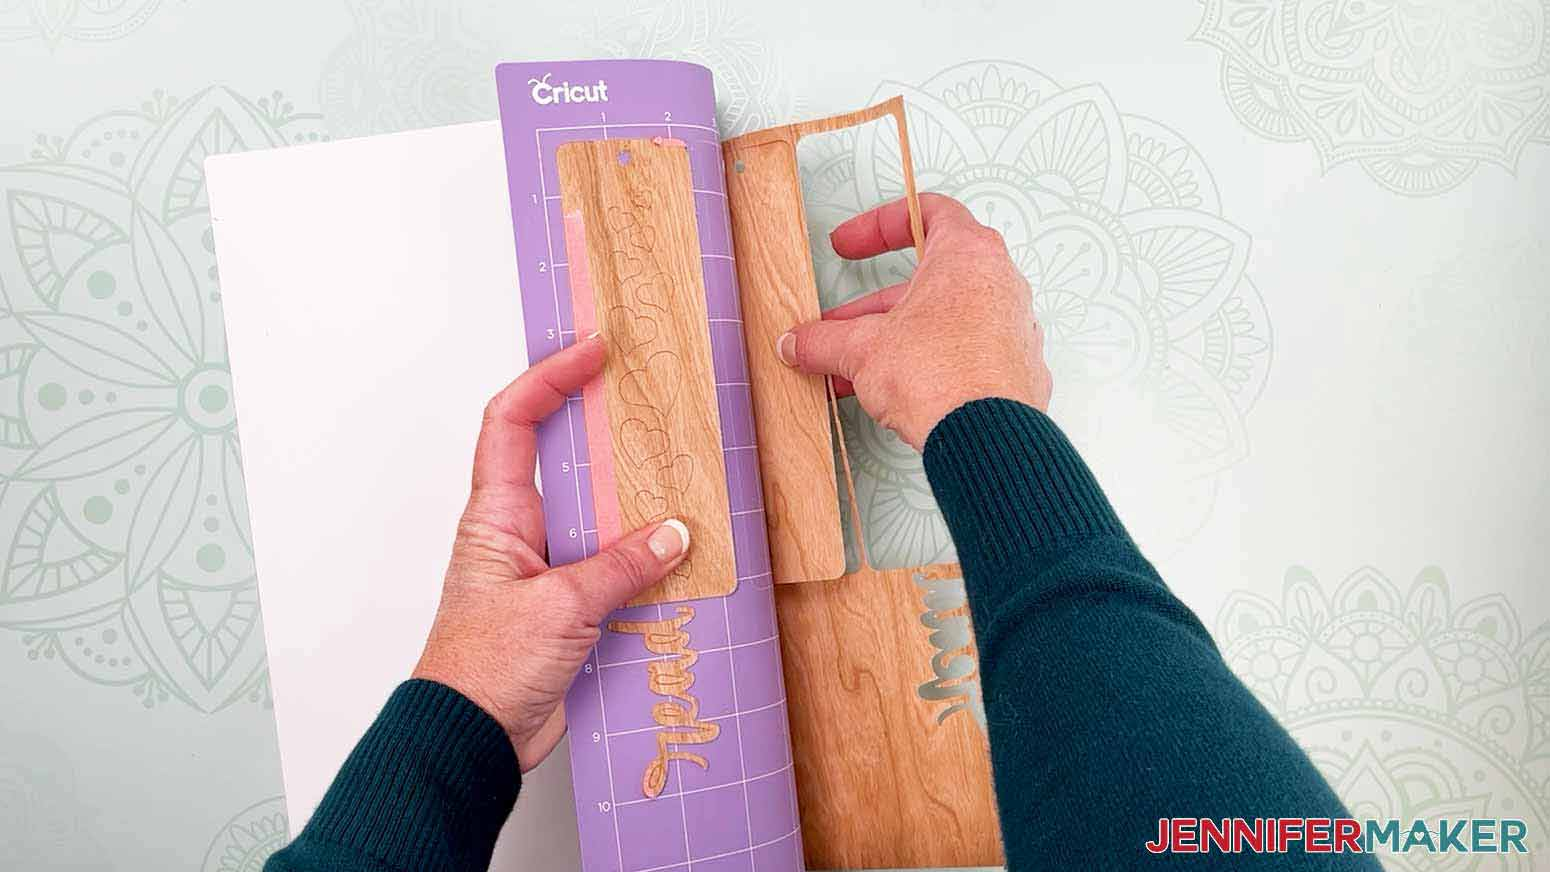 Flip your cutting mat over and peel back away from the veneer to remove it for my wooden bookmarks project